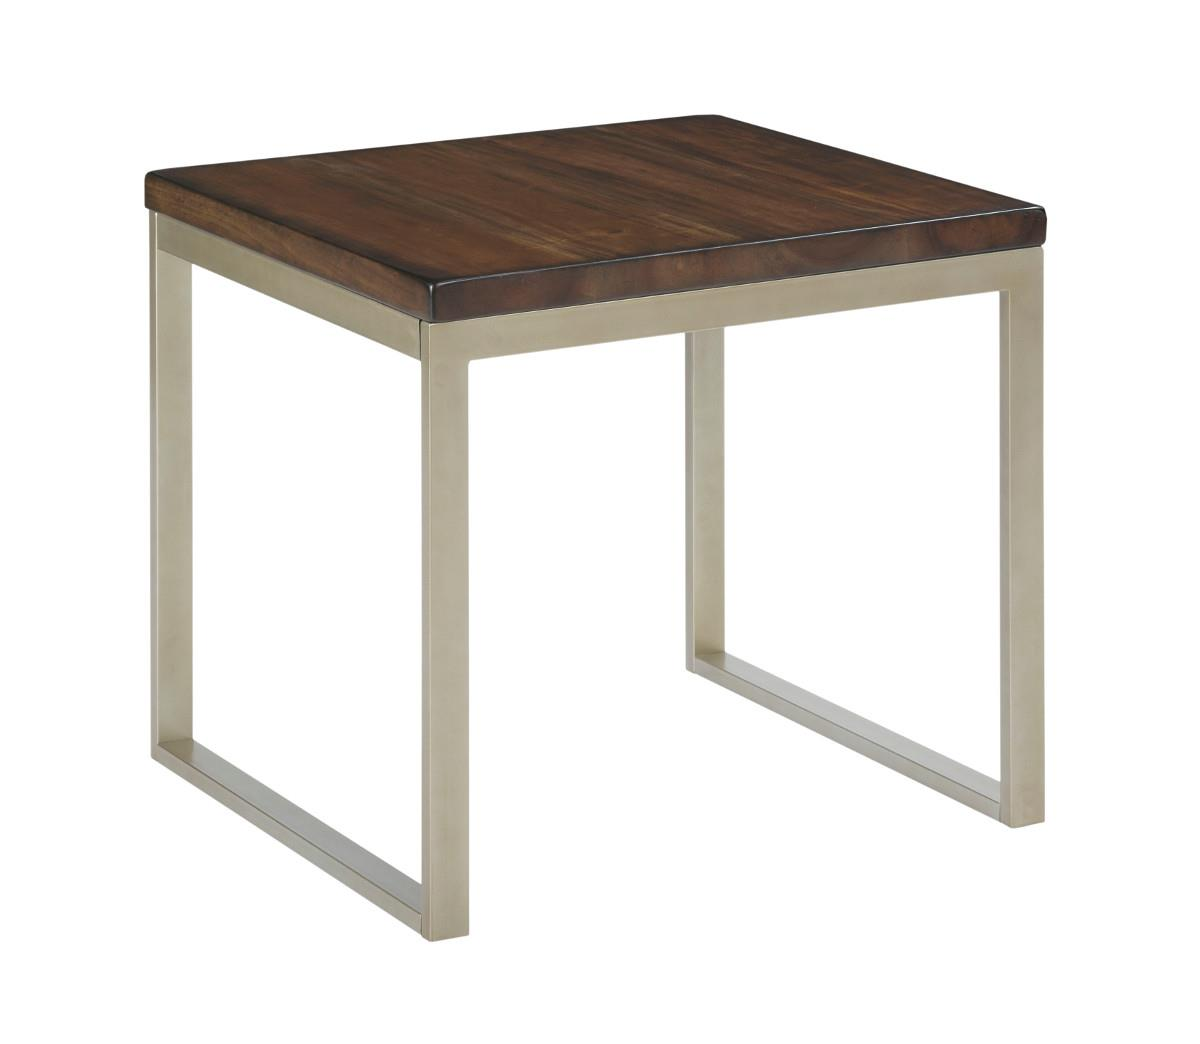 Kincaid Furniture Modern Classics Occasional Tables End Table   Item  Number: 69 1330